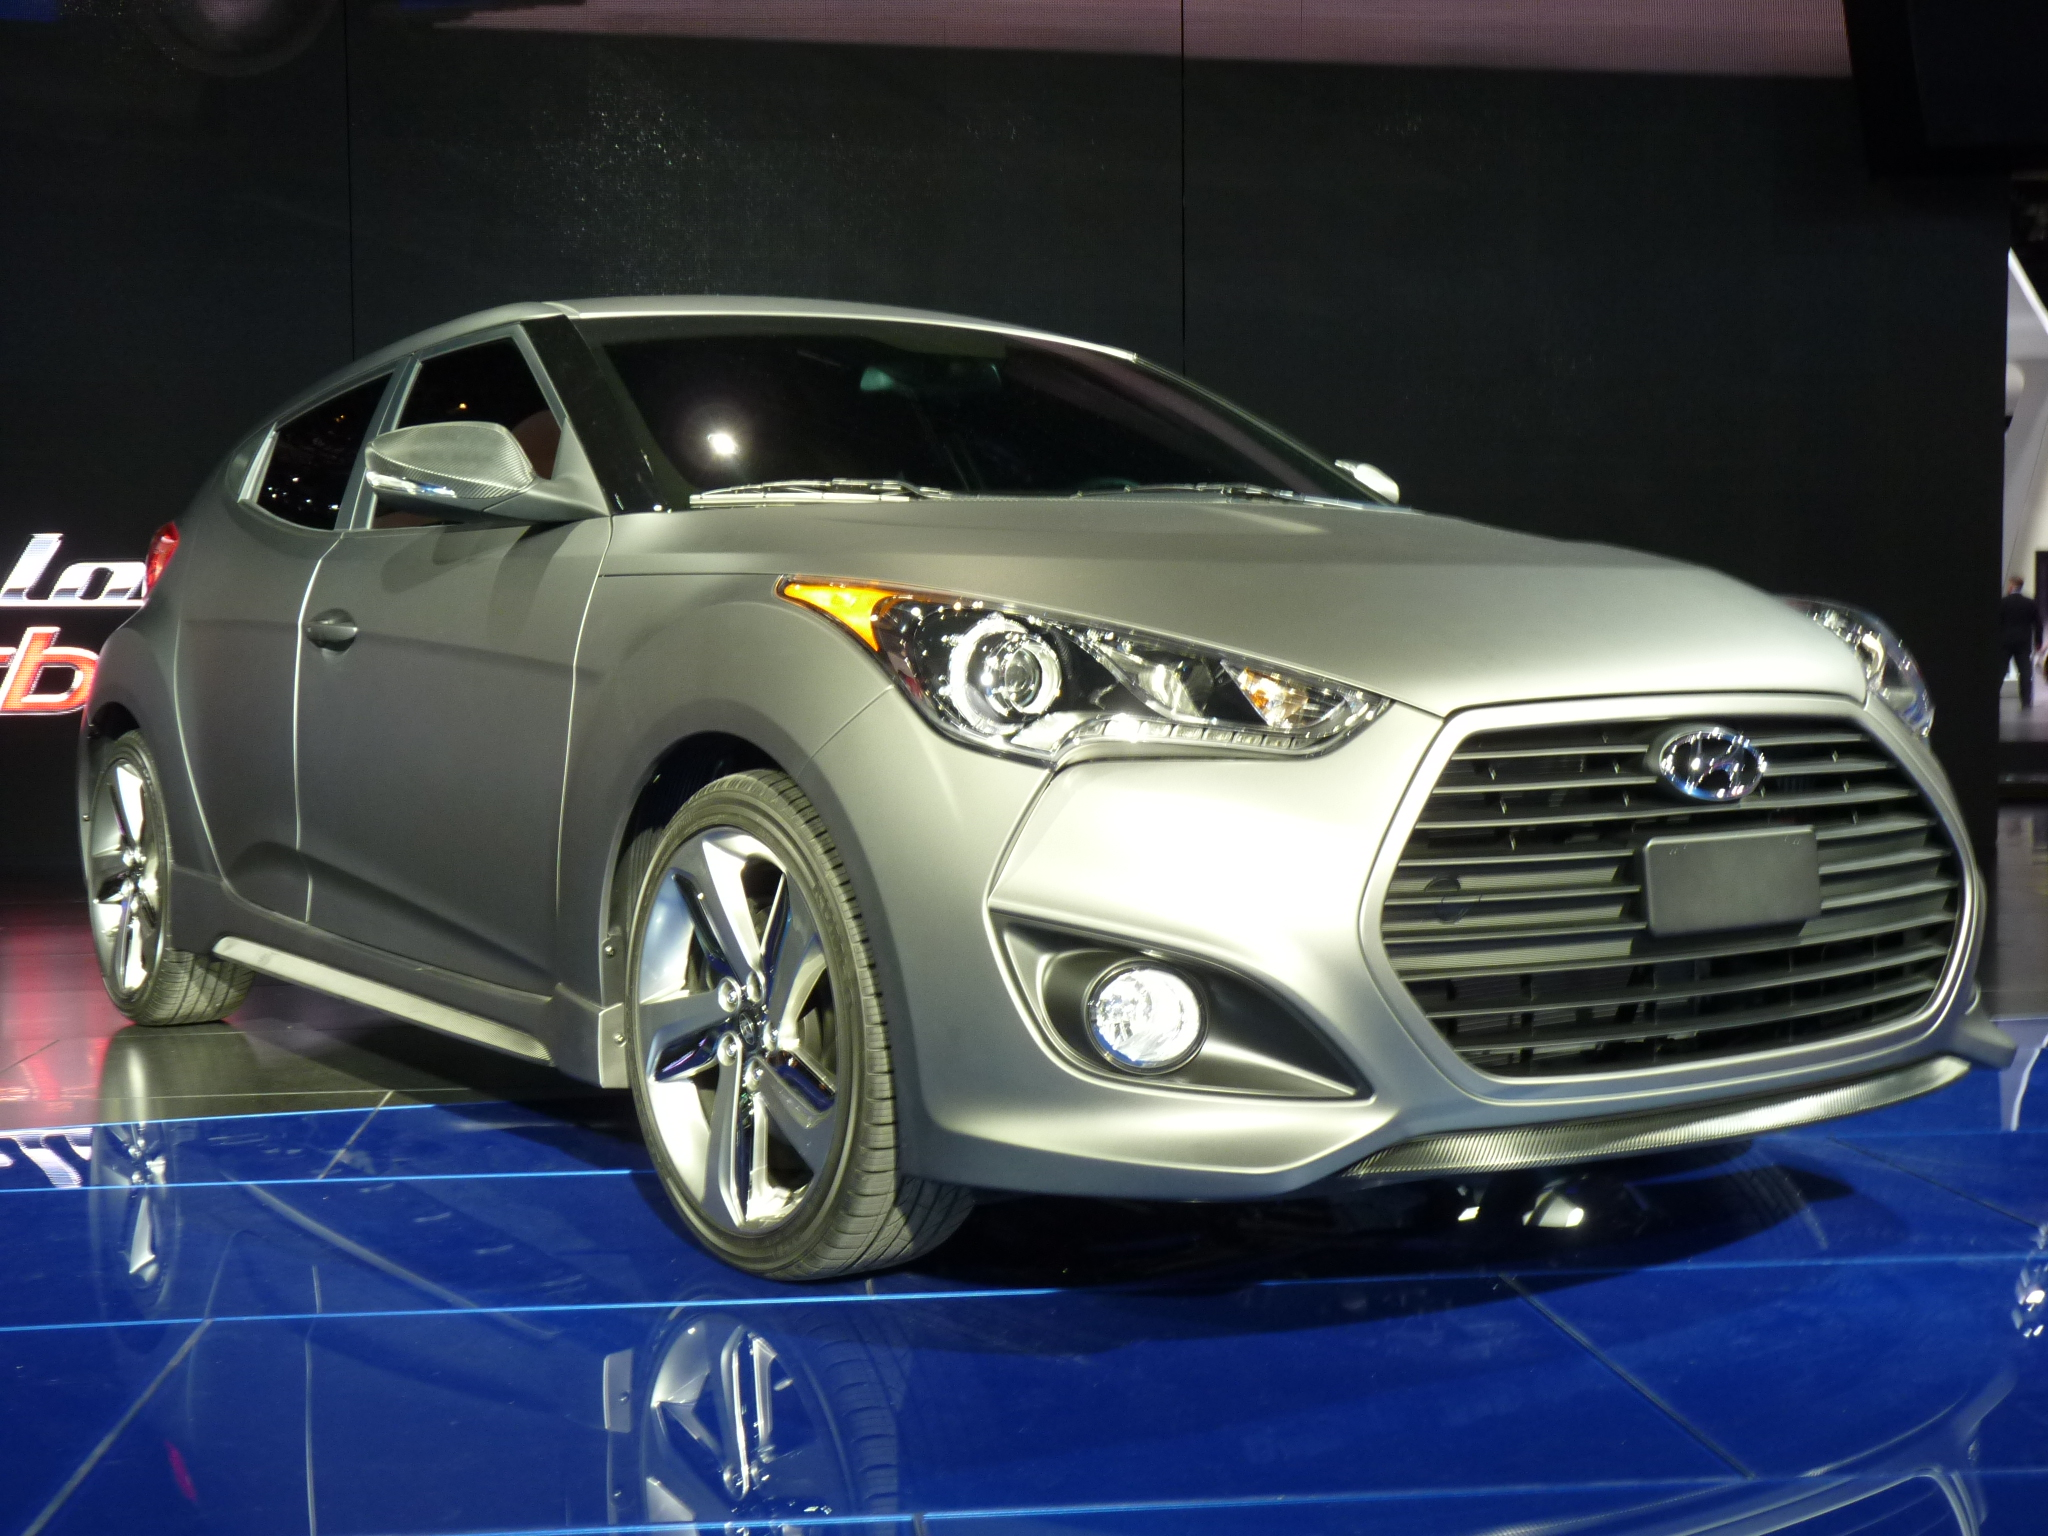 2013 Hyundai Veloster Turbo: 2012 Detroit Auto Show Video